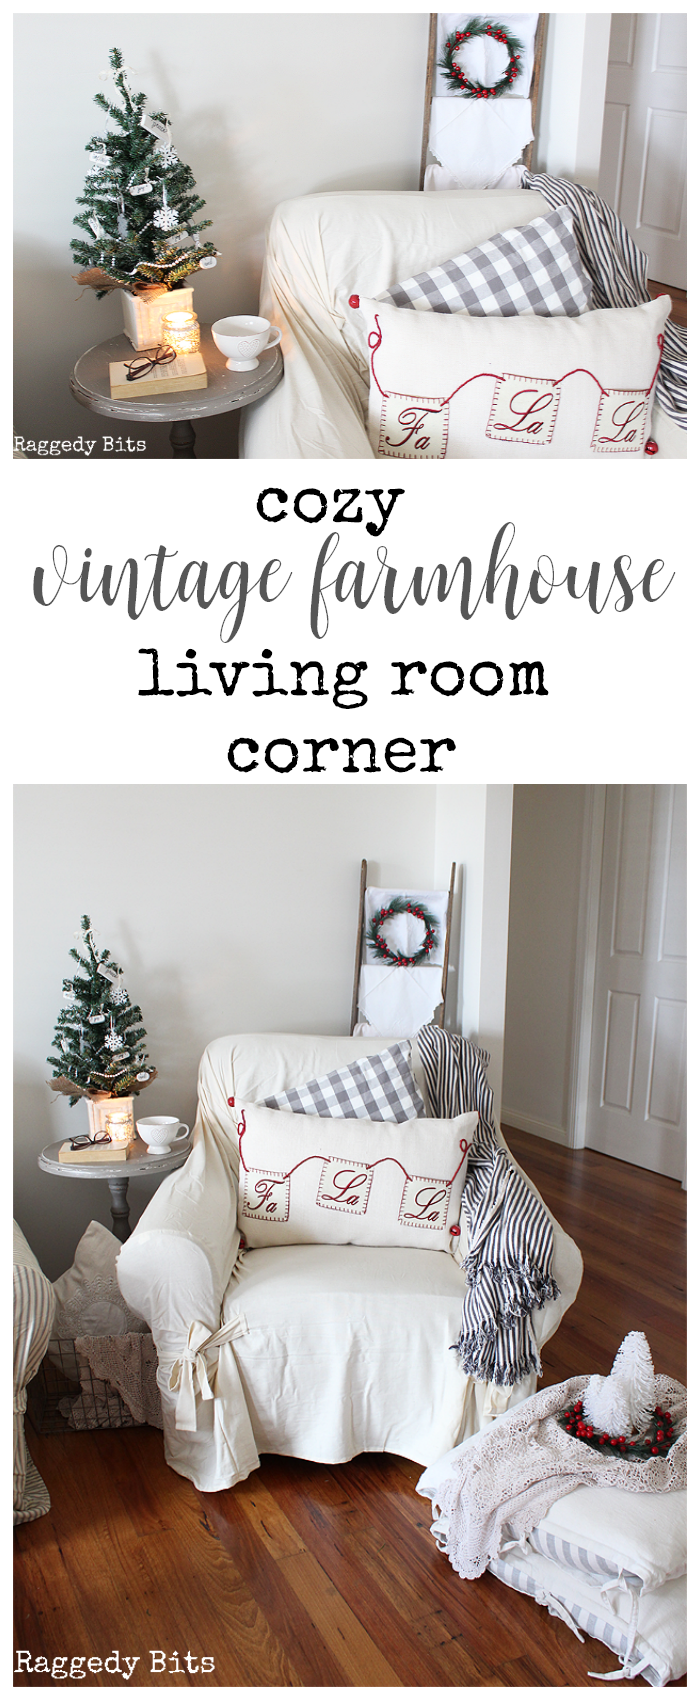 Join me and my sweet blogging pals as we share some cozy Christmas Spots around our homes | Cosy Vintage Farmhouse Living Room Corner | www.raggedy-bits.com #cozy #decorating #ideas #raggedybits #livingroom #christmas #farmhouse #vintage